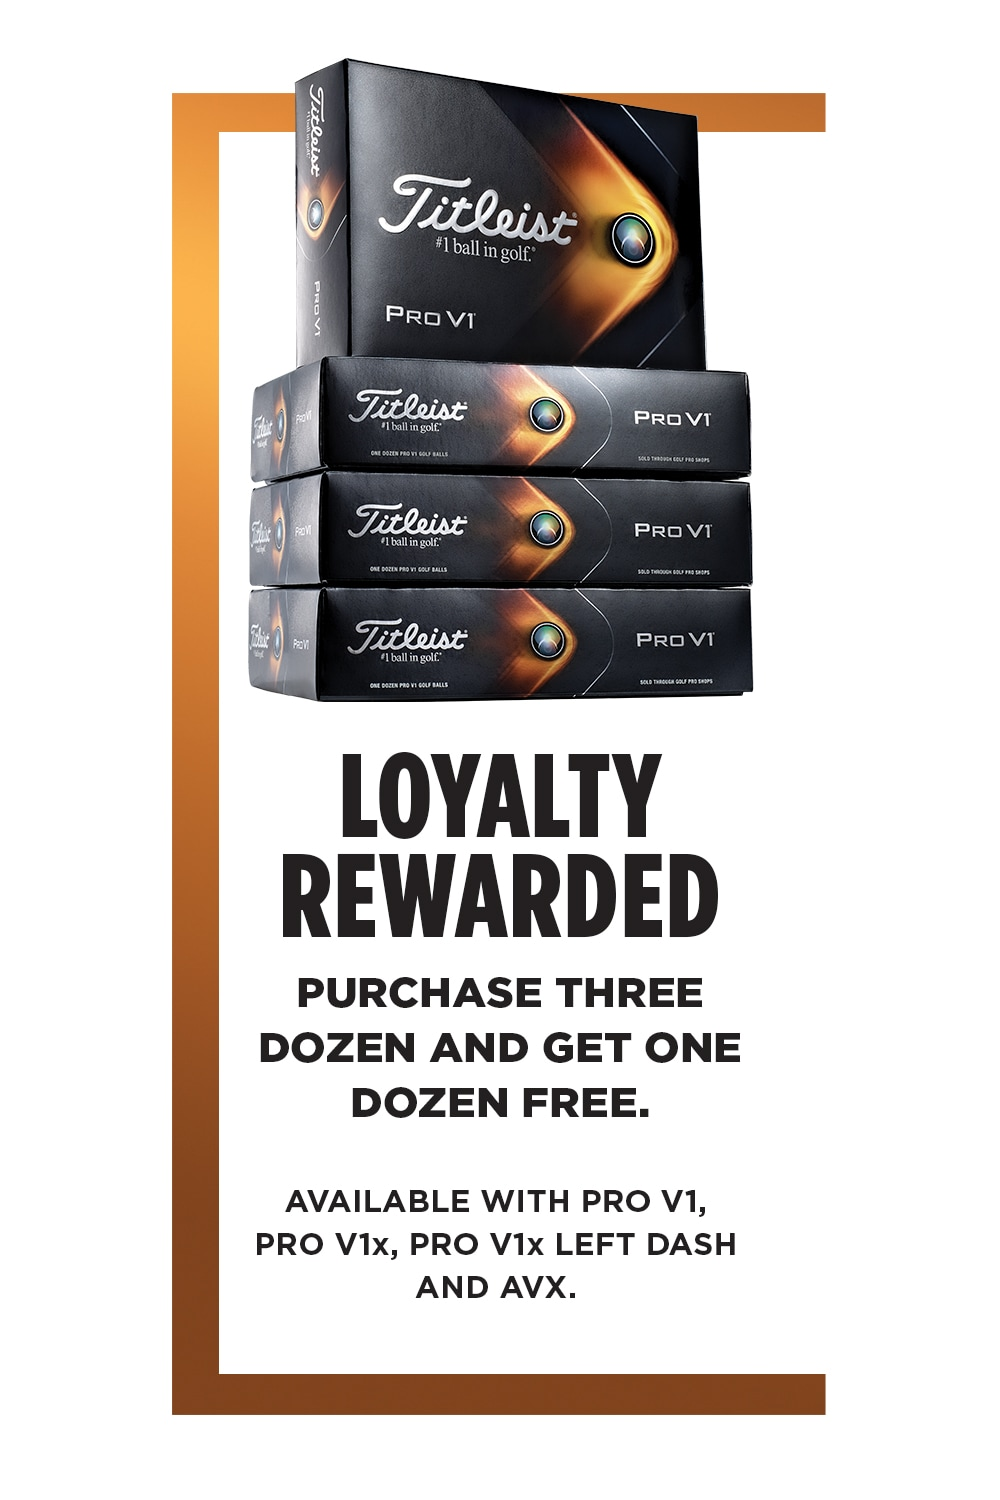 2021 Loyalty Rewarded